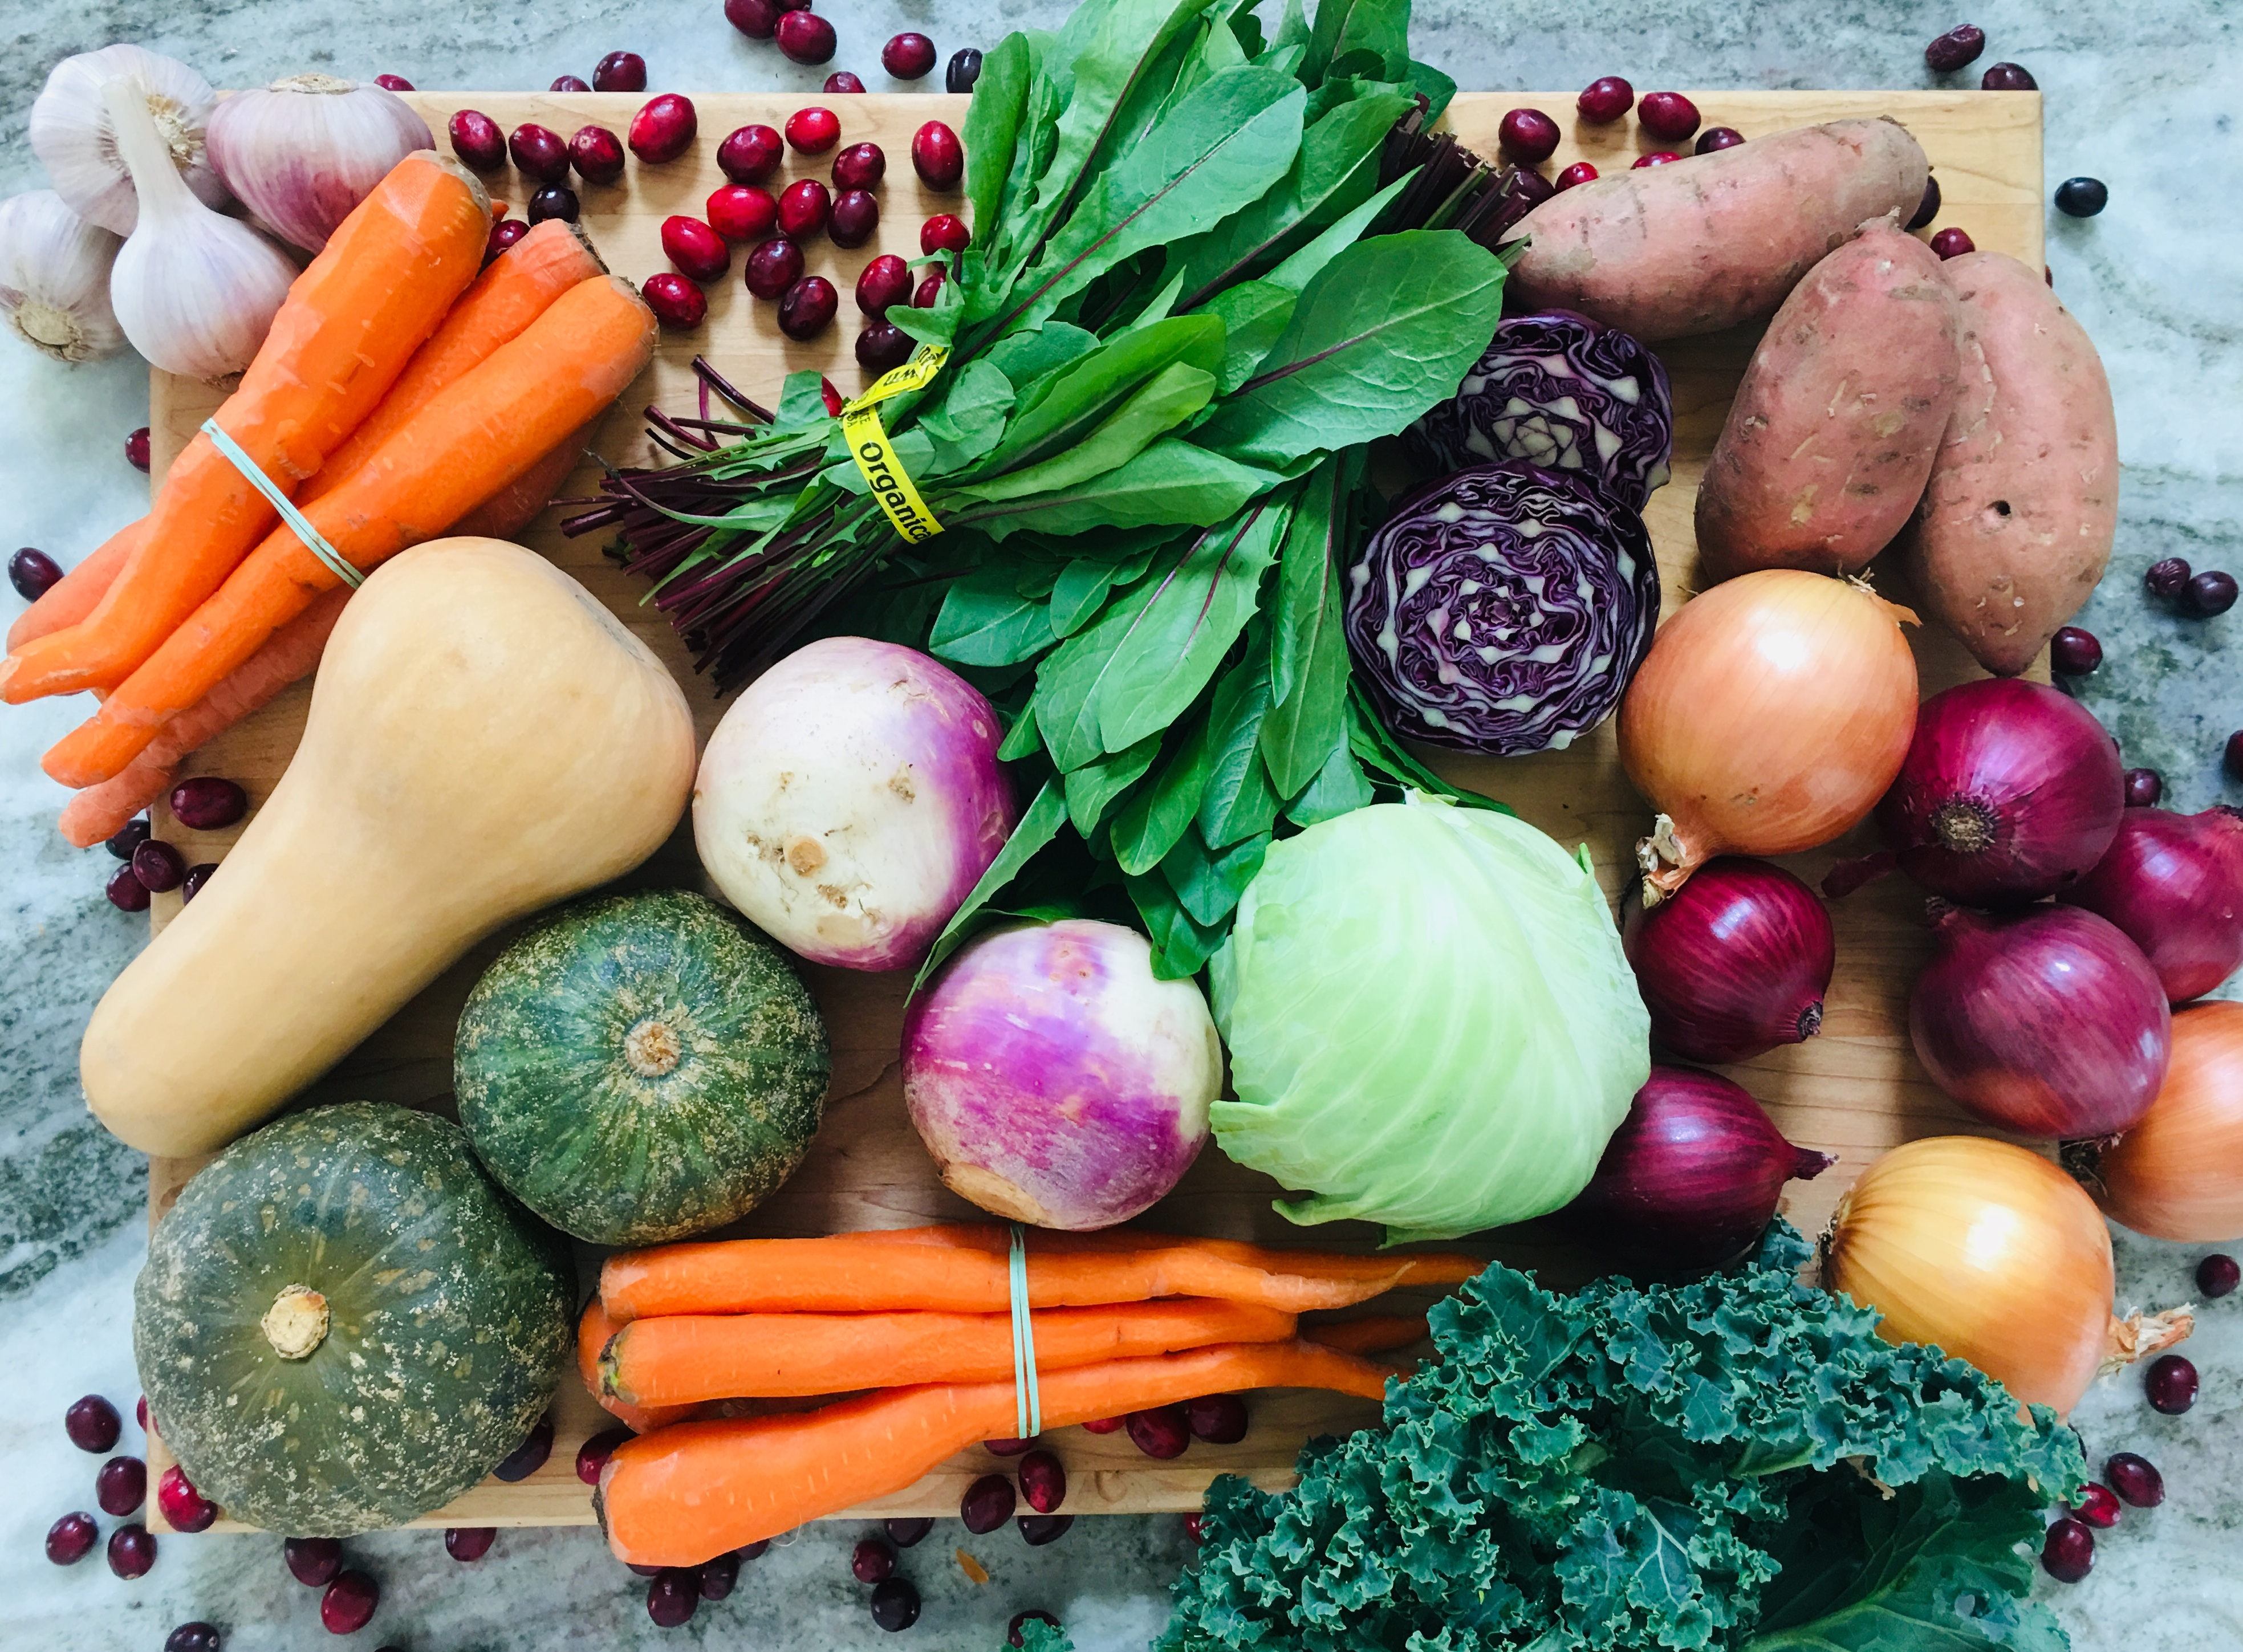 Order Your Holiday Veggies and Local Treats from Farm Stand Online!